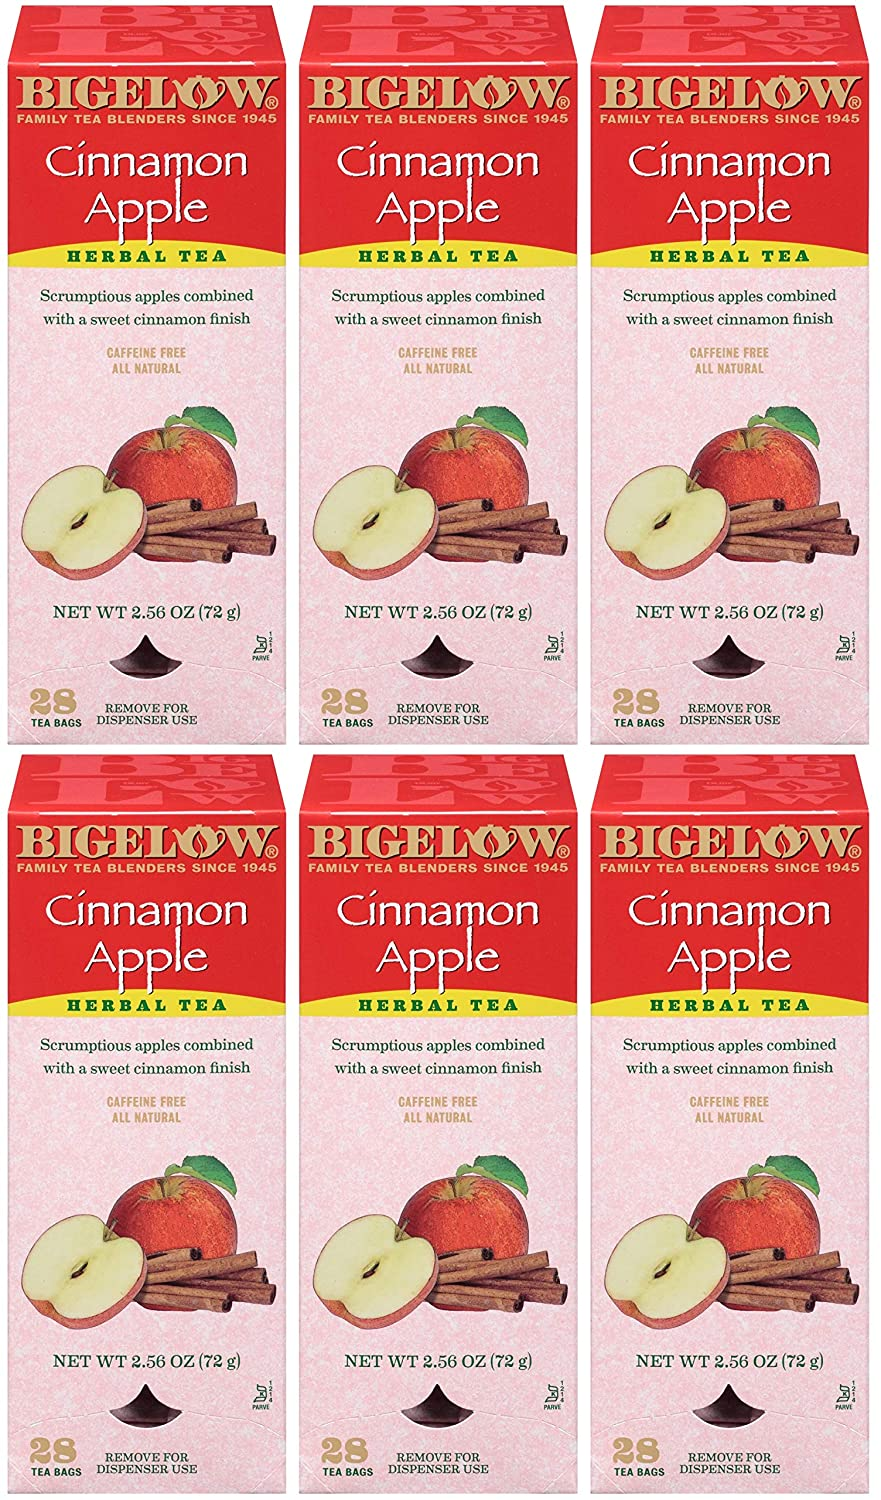 Bigelow Cinnamon Apple Herbal Tea Bags 28-Count Boxes (Pack of 6) Cinnamon Apple Hibiscus Flavored Herbal Tea Bags All Natural Non-GMO